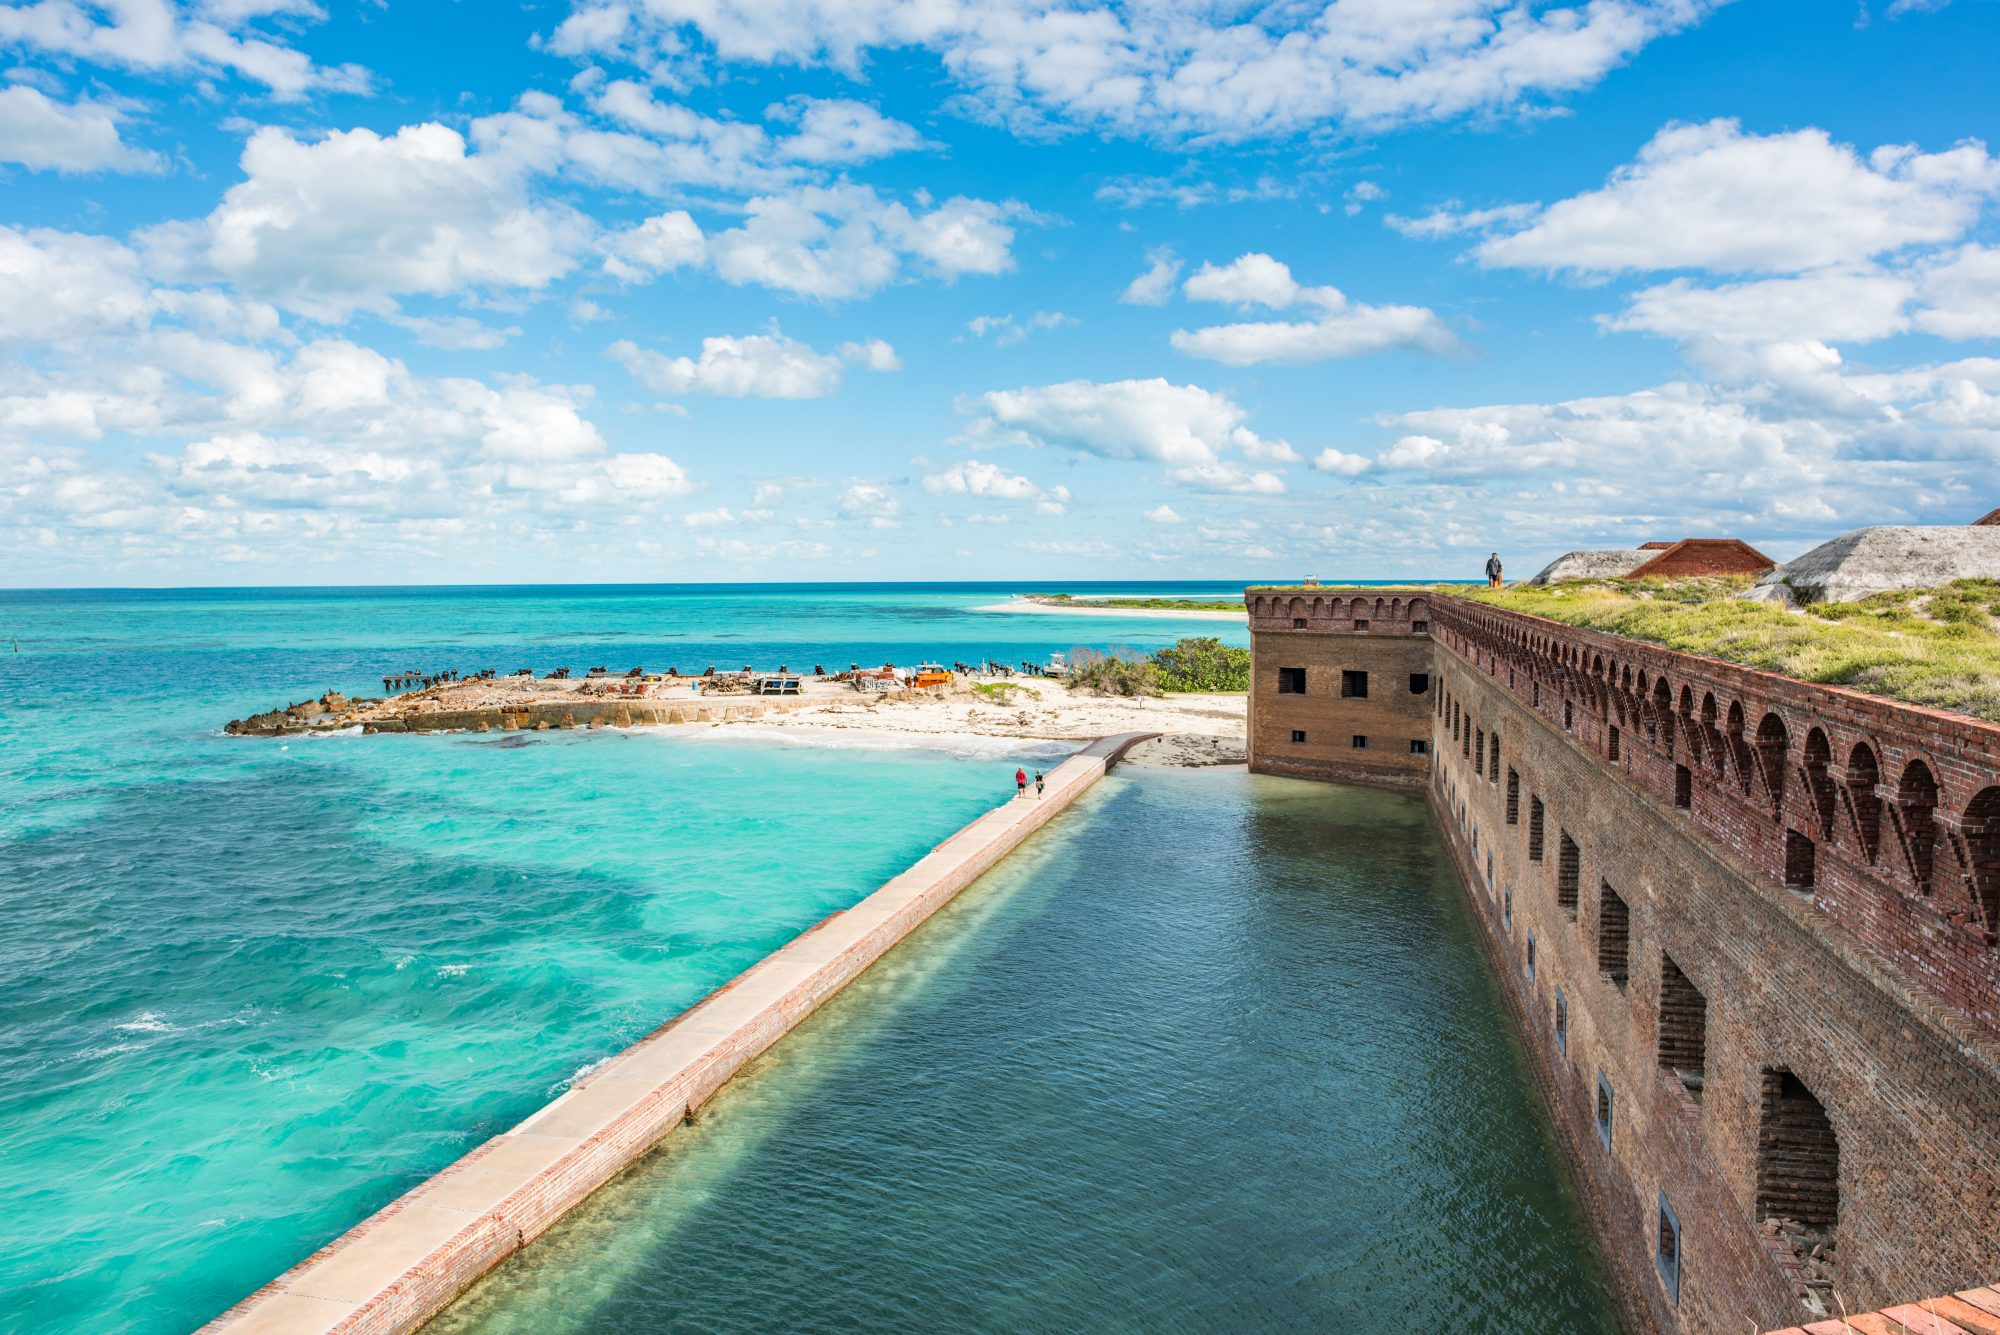 The ultimate snorkeling getaway lies 70 miles off Key West at Dry Tortugas National Park, which is only accessible by ferry or seaplane. Snorkeling the crystal-clear waters around the historic fort makes for the perfect day trip, and camping at historic Fort Jefferson allows for a number of unique adventures underwater, even night snorkeling.